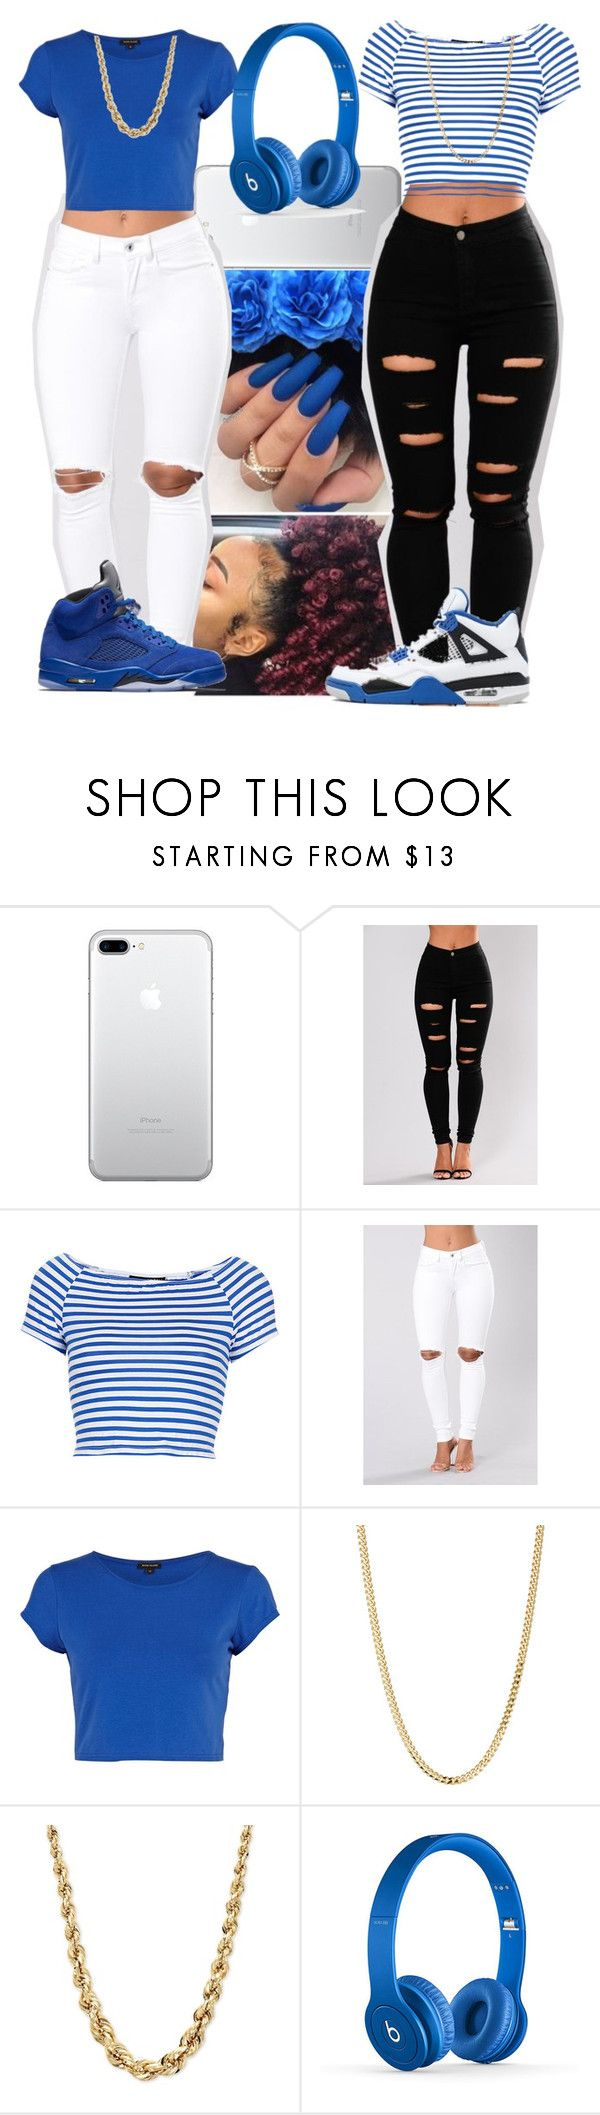 """I Won't-H.E.R"" by trippybabii ❤ liked on Polyvore featuring Topshop, River Island, Bianca Pratt and Beats by Dr. Dre"